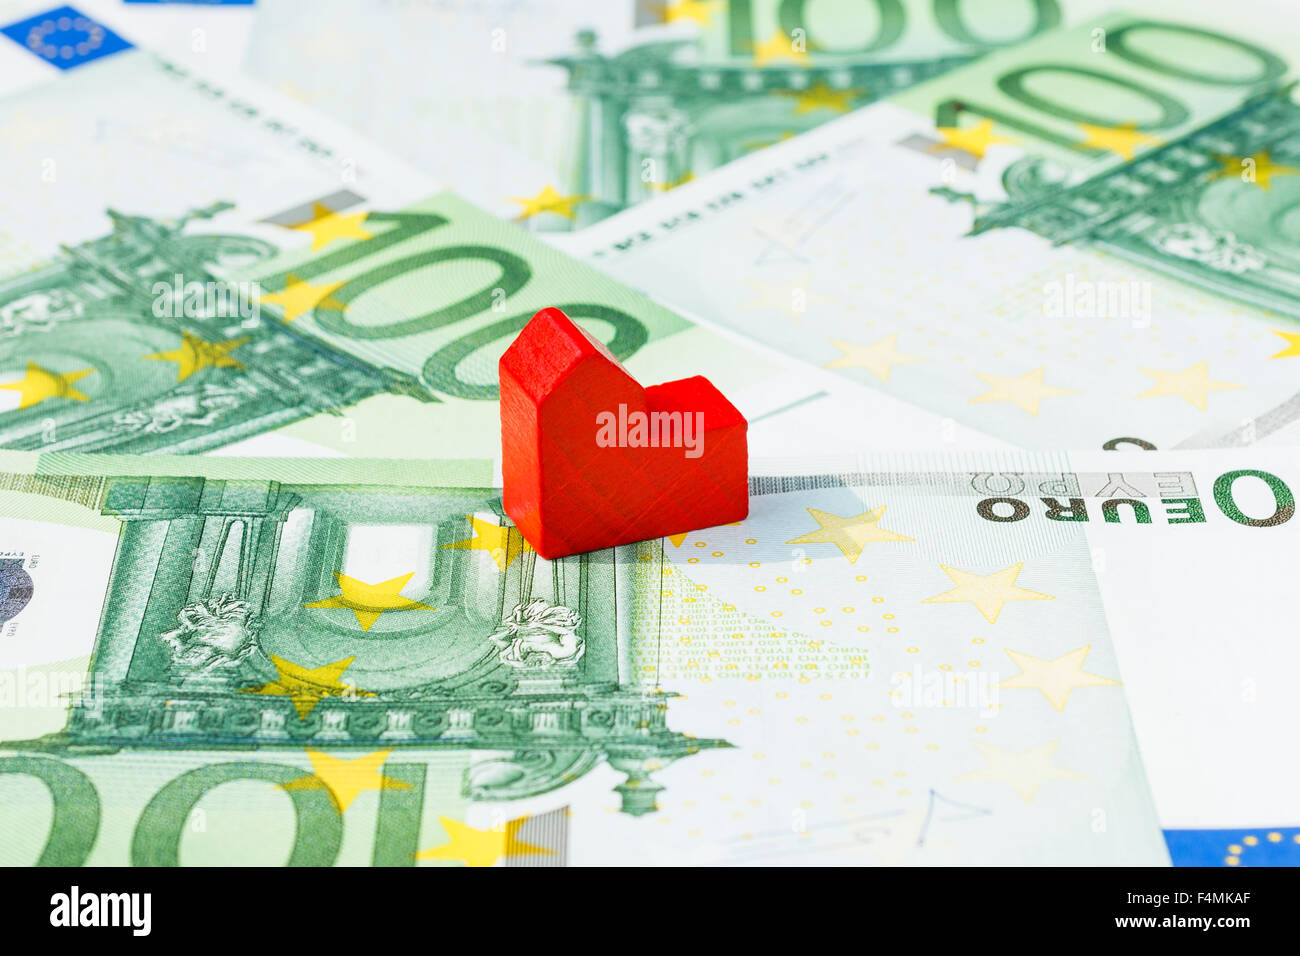 Concept house sell, foreclosure, debt, bill, mortgage on hundred euro banknotes. Focus on red house. - Stock Image